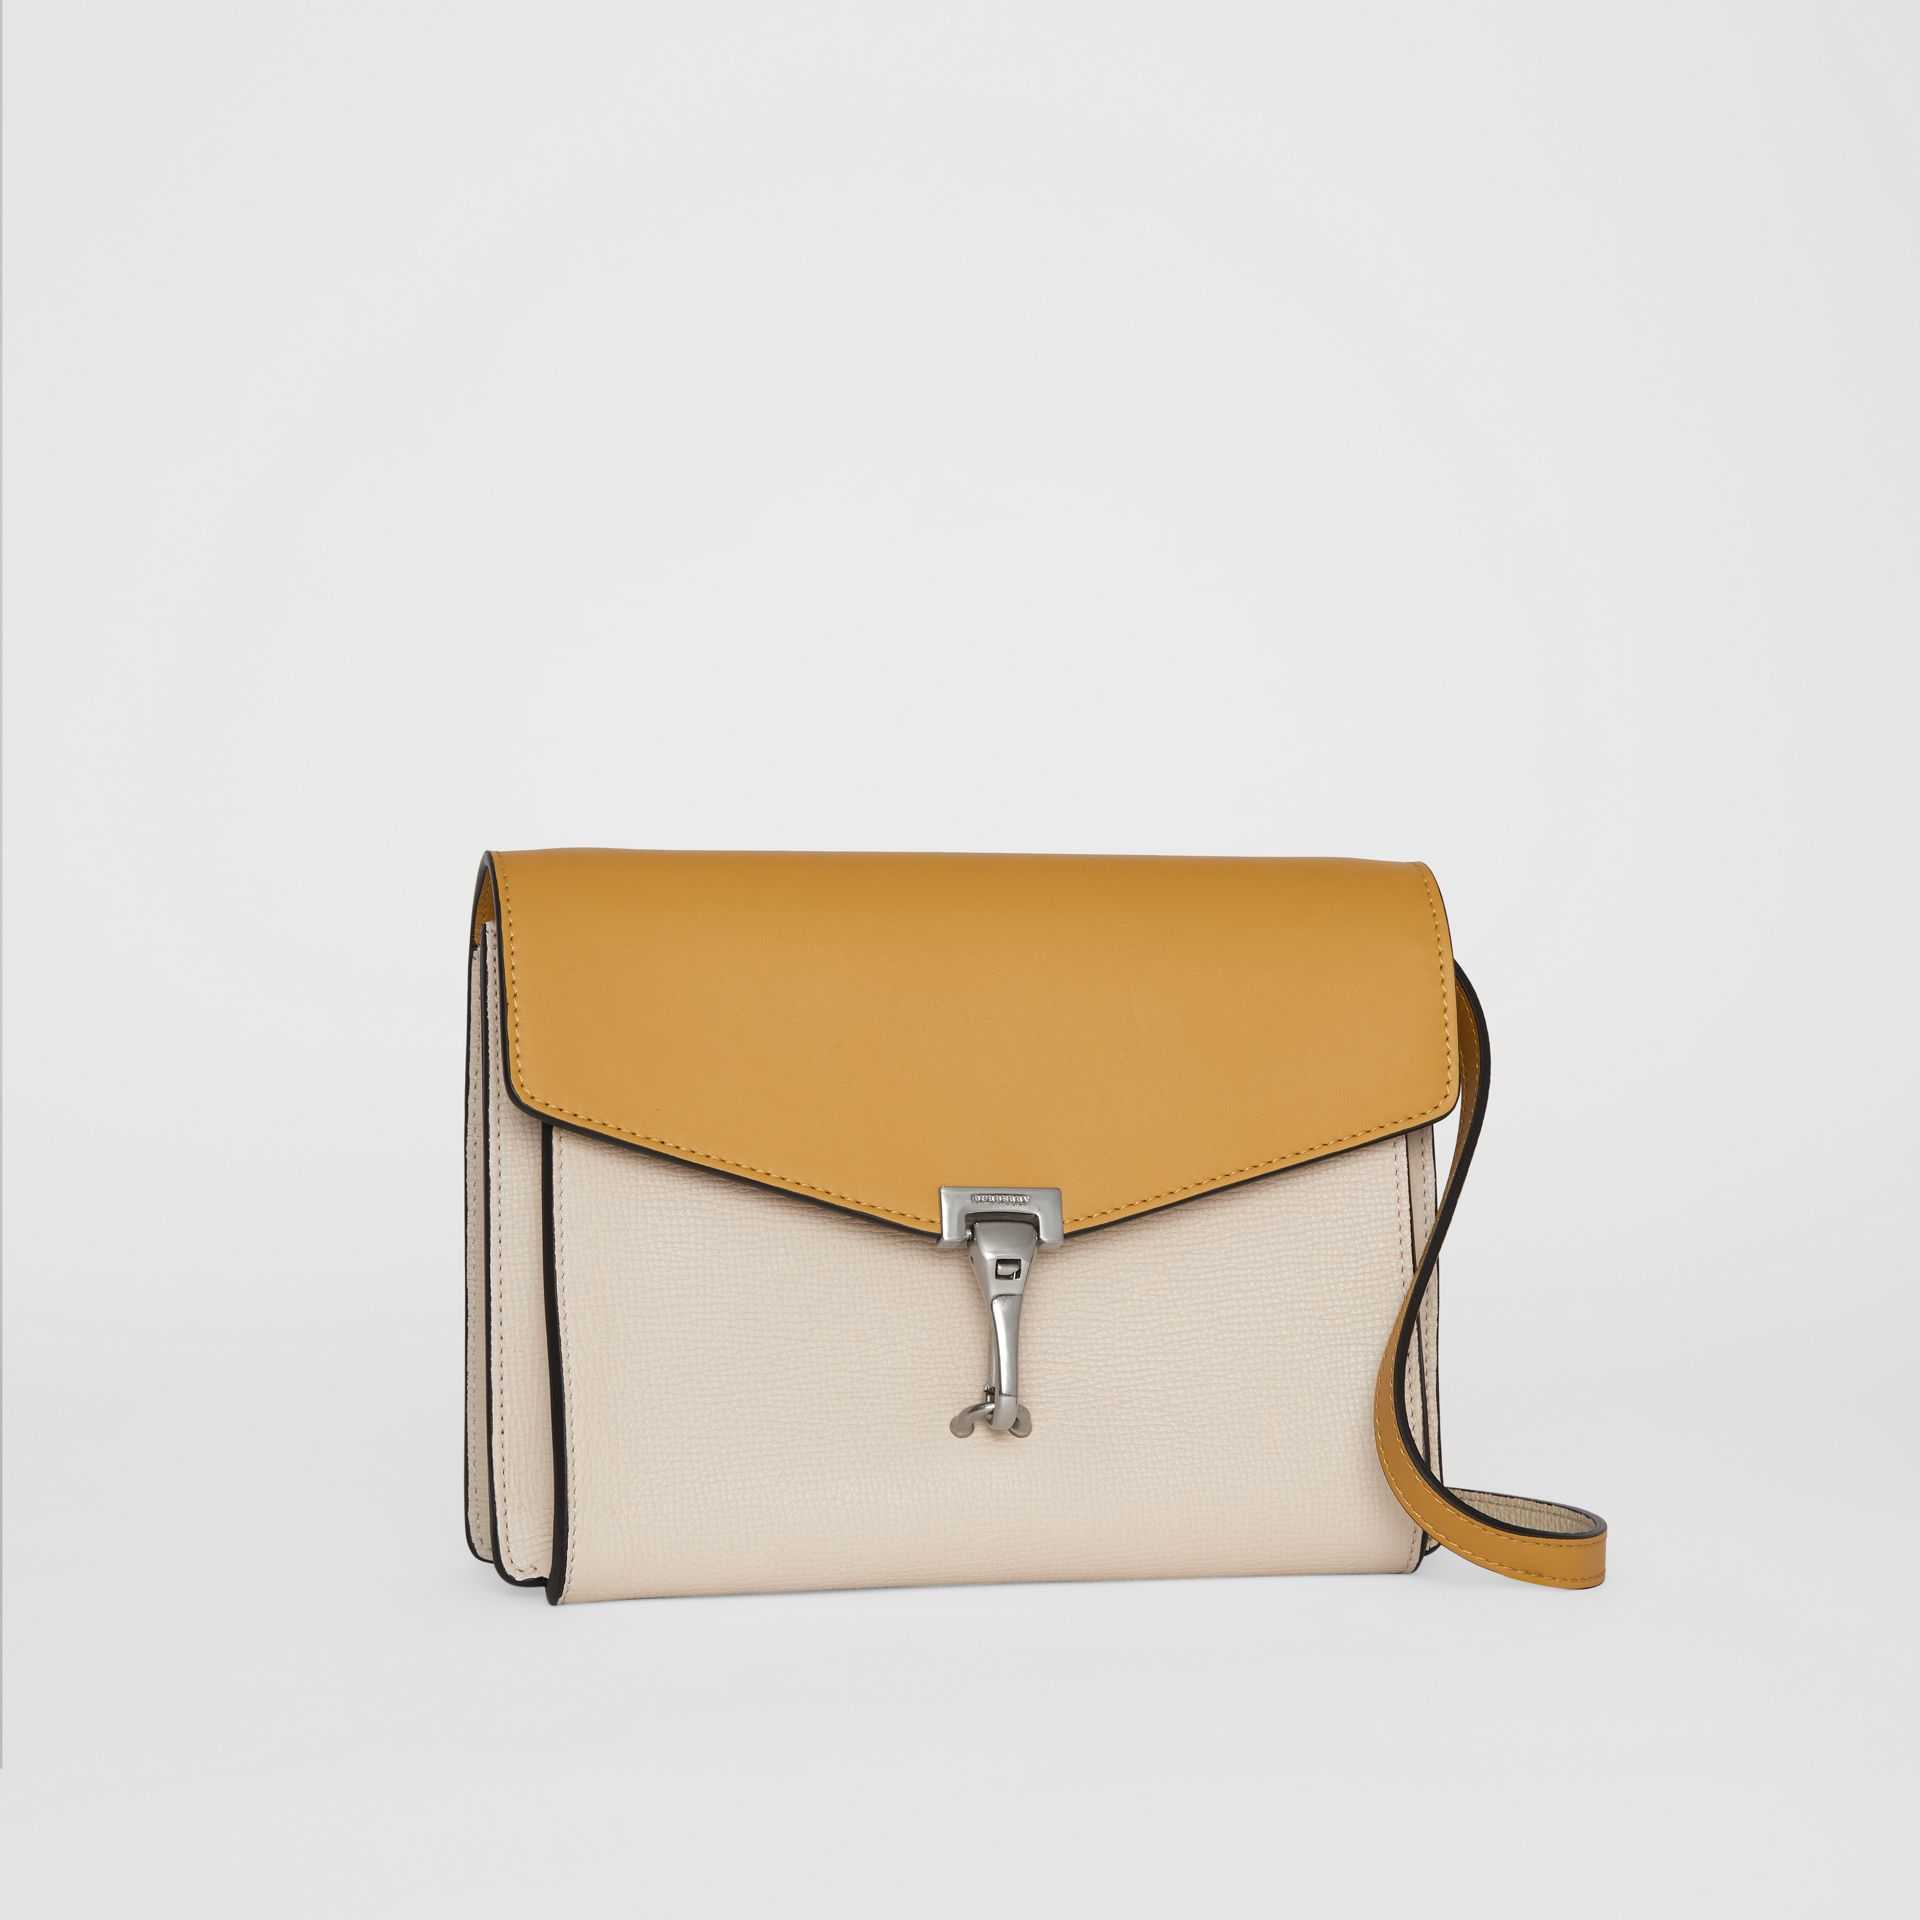 Two-tone Leather Crossbody Bag in Limestone/cornflower Yellow - Women | Burberry - gallery image 6